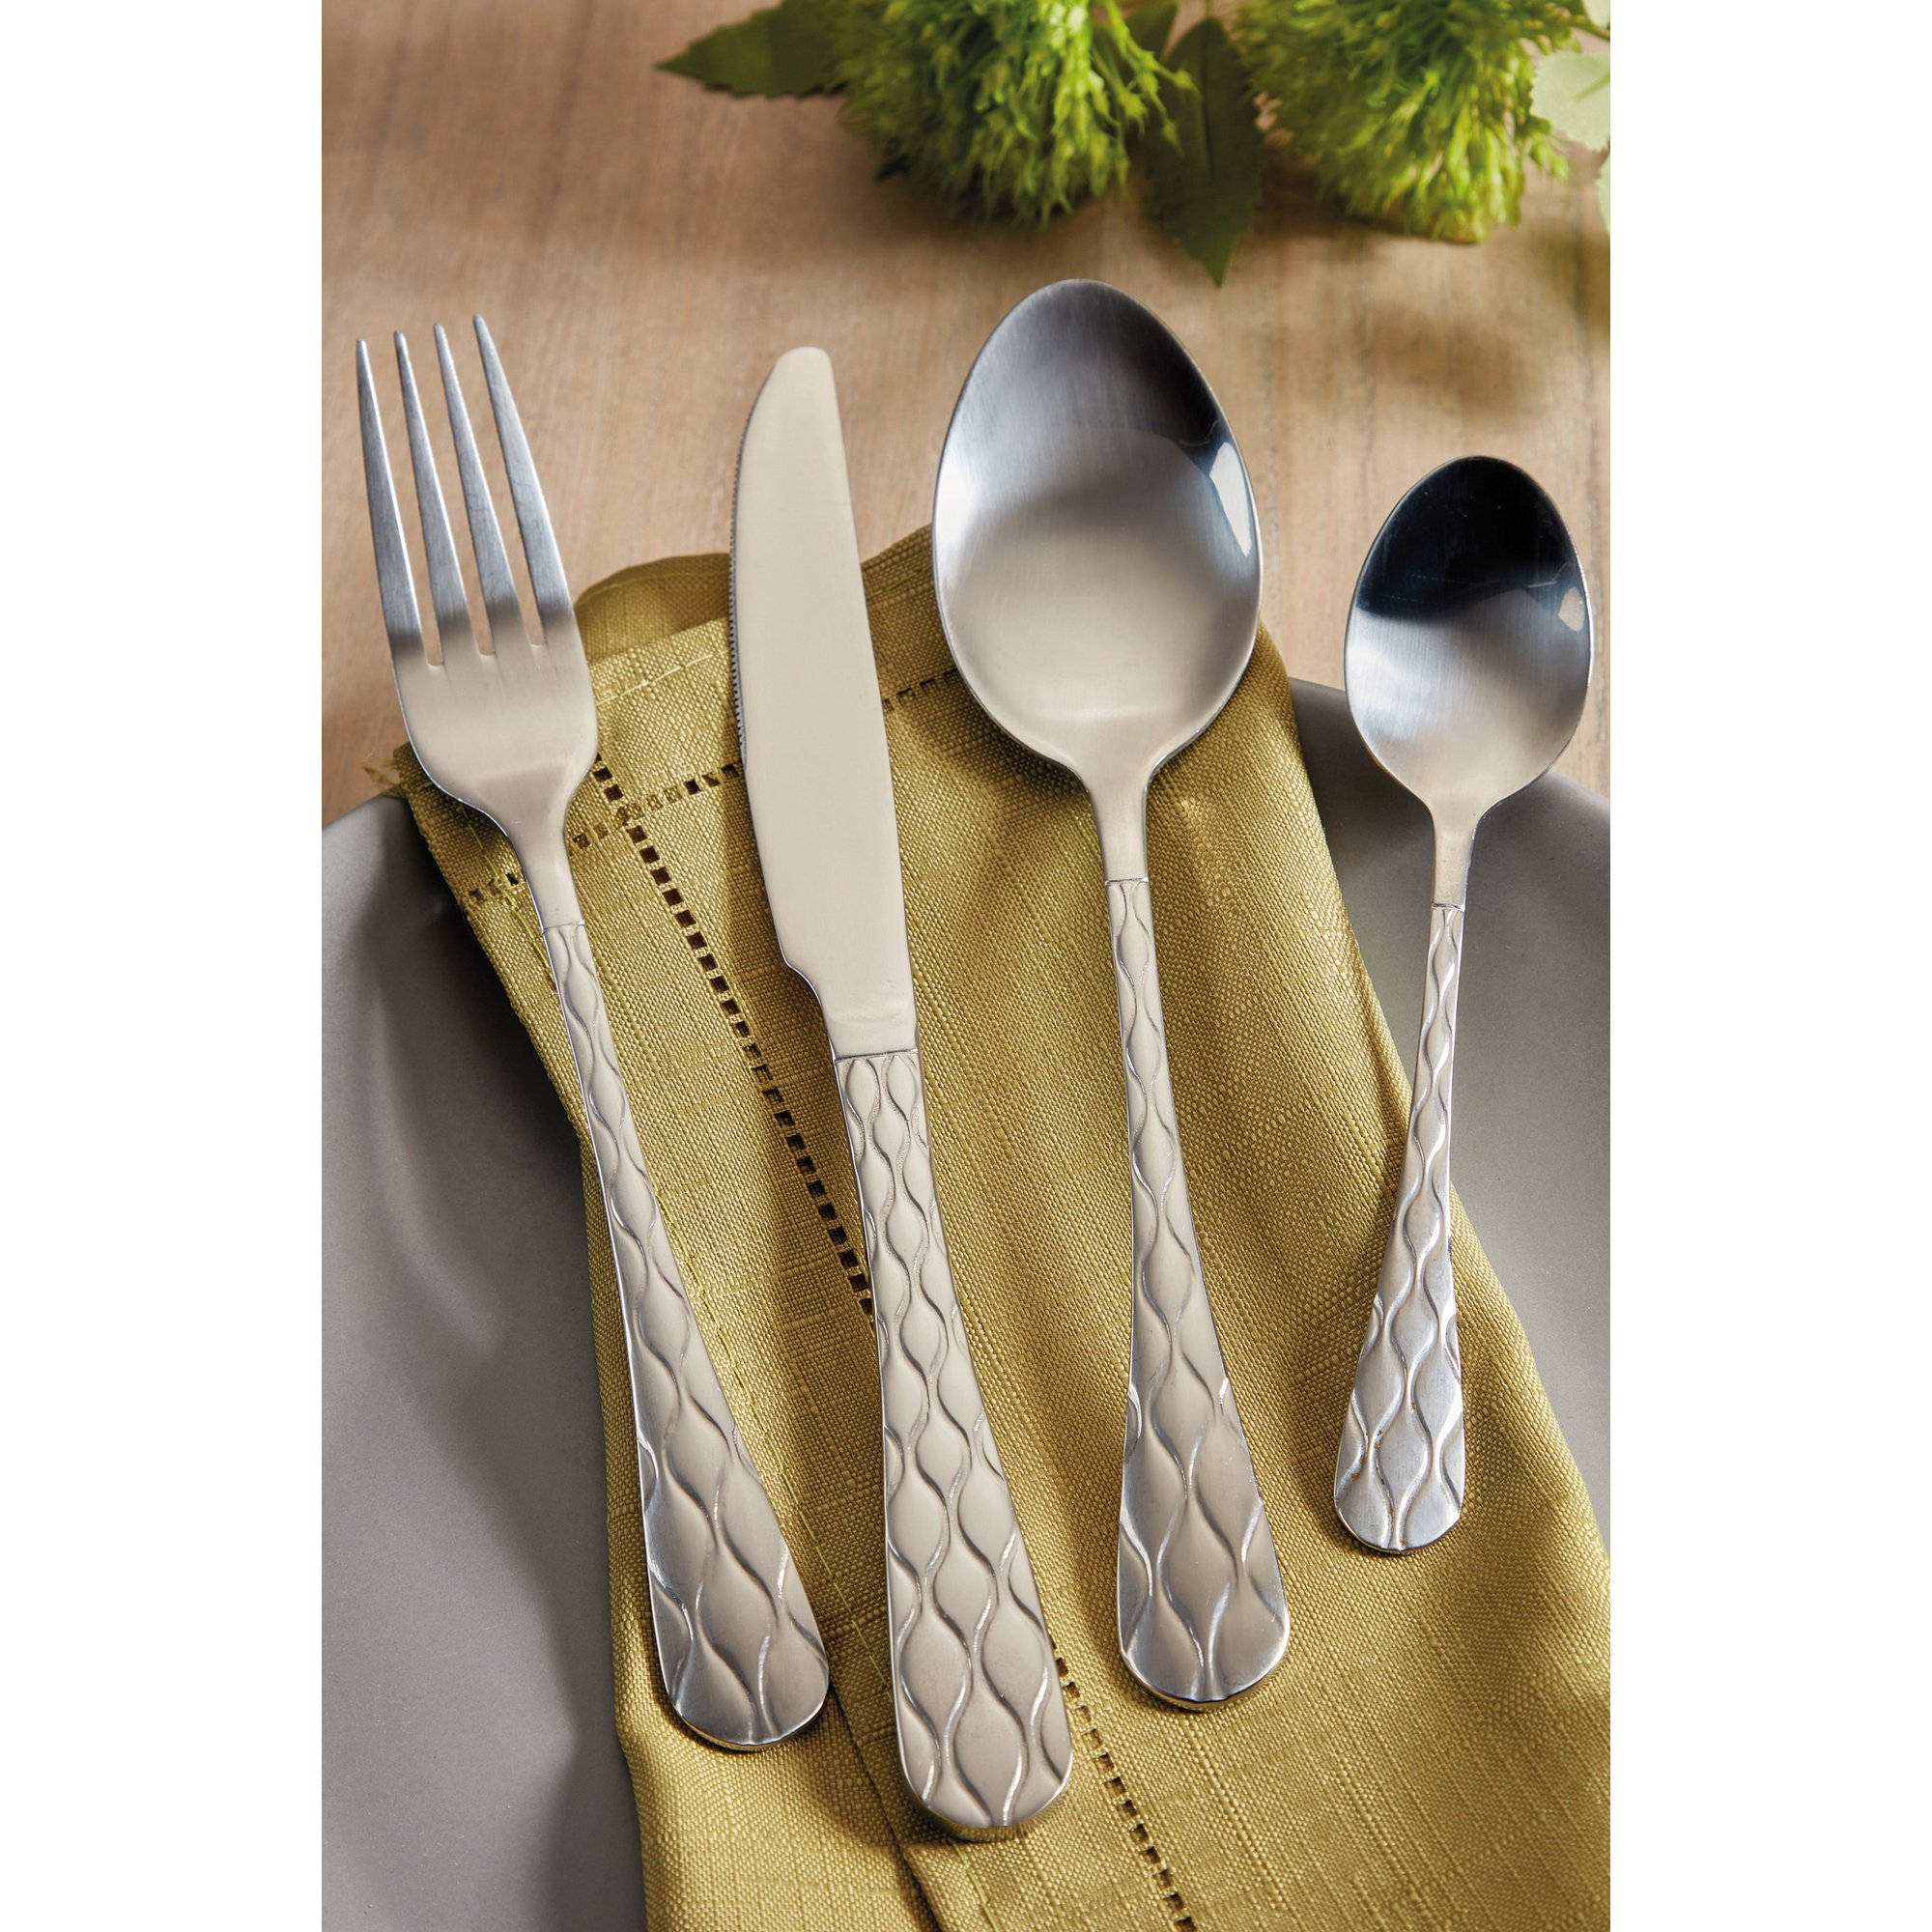 Image of 16-Piece Quilted Stainless Steel Cutlery Set